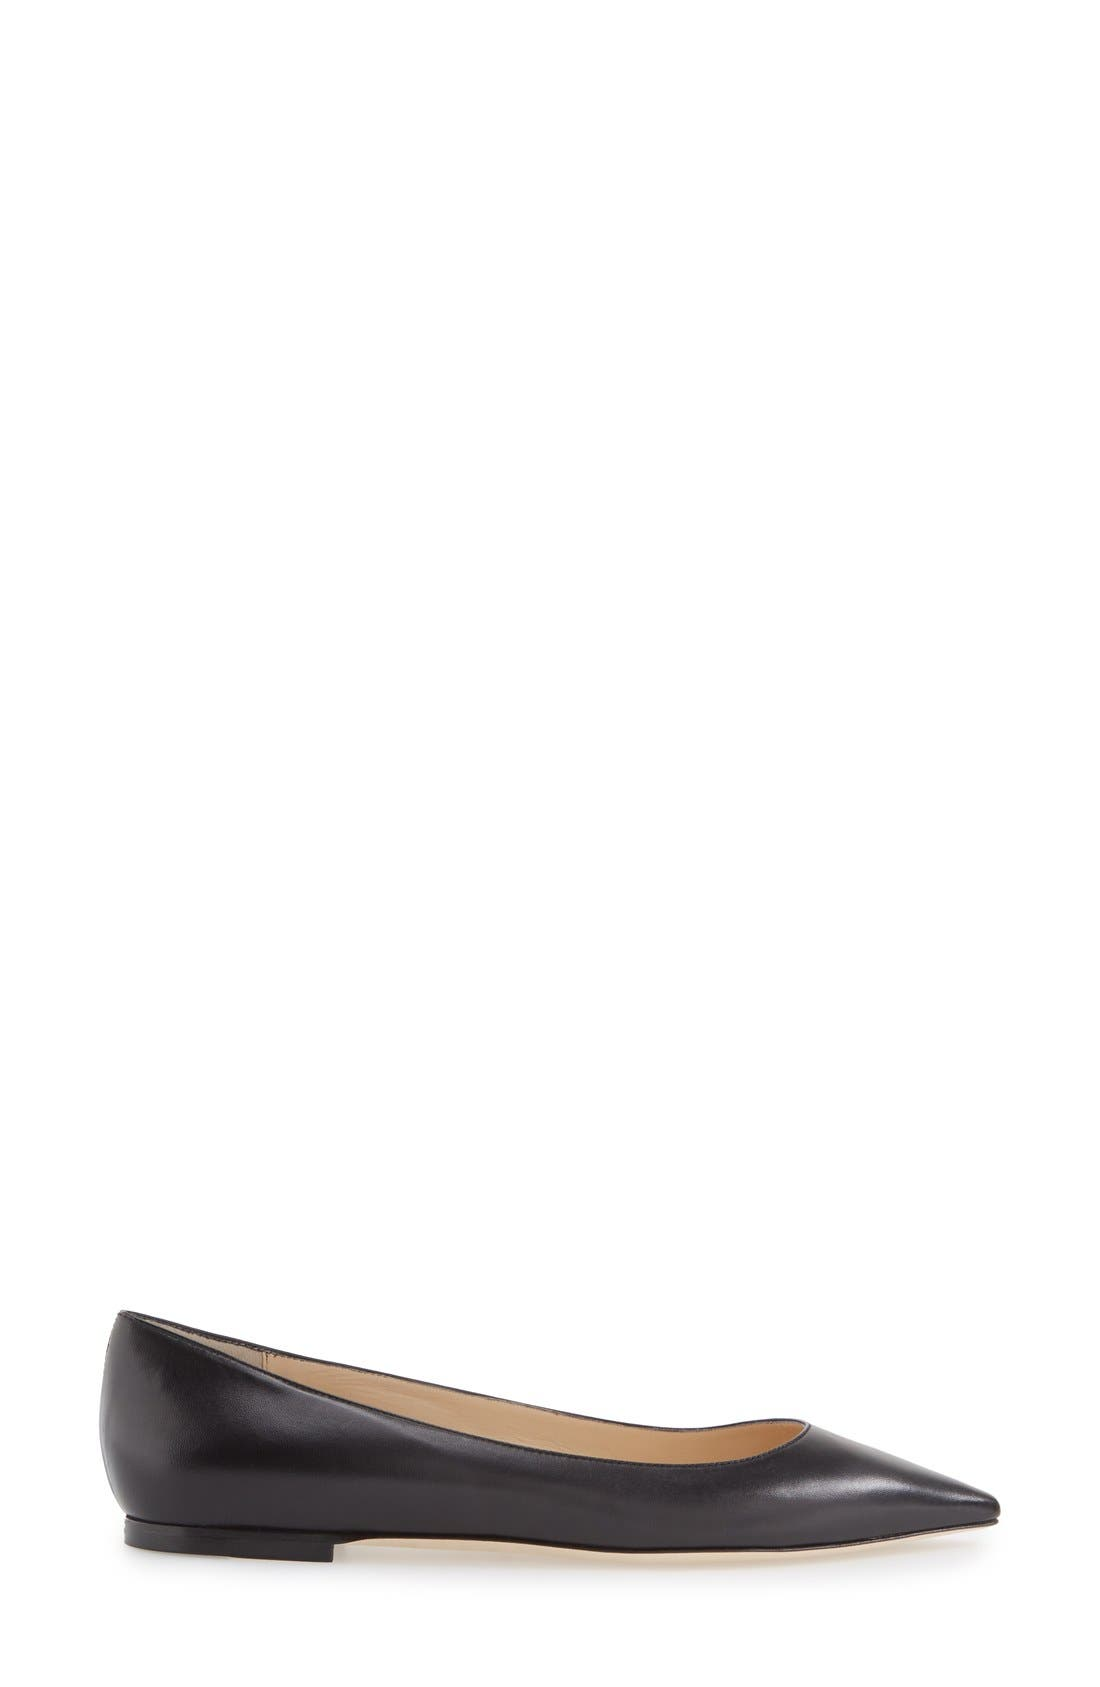 'Romy' Pointy Toe Flat,                             Alternate thumbnail 24, color,